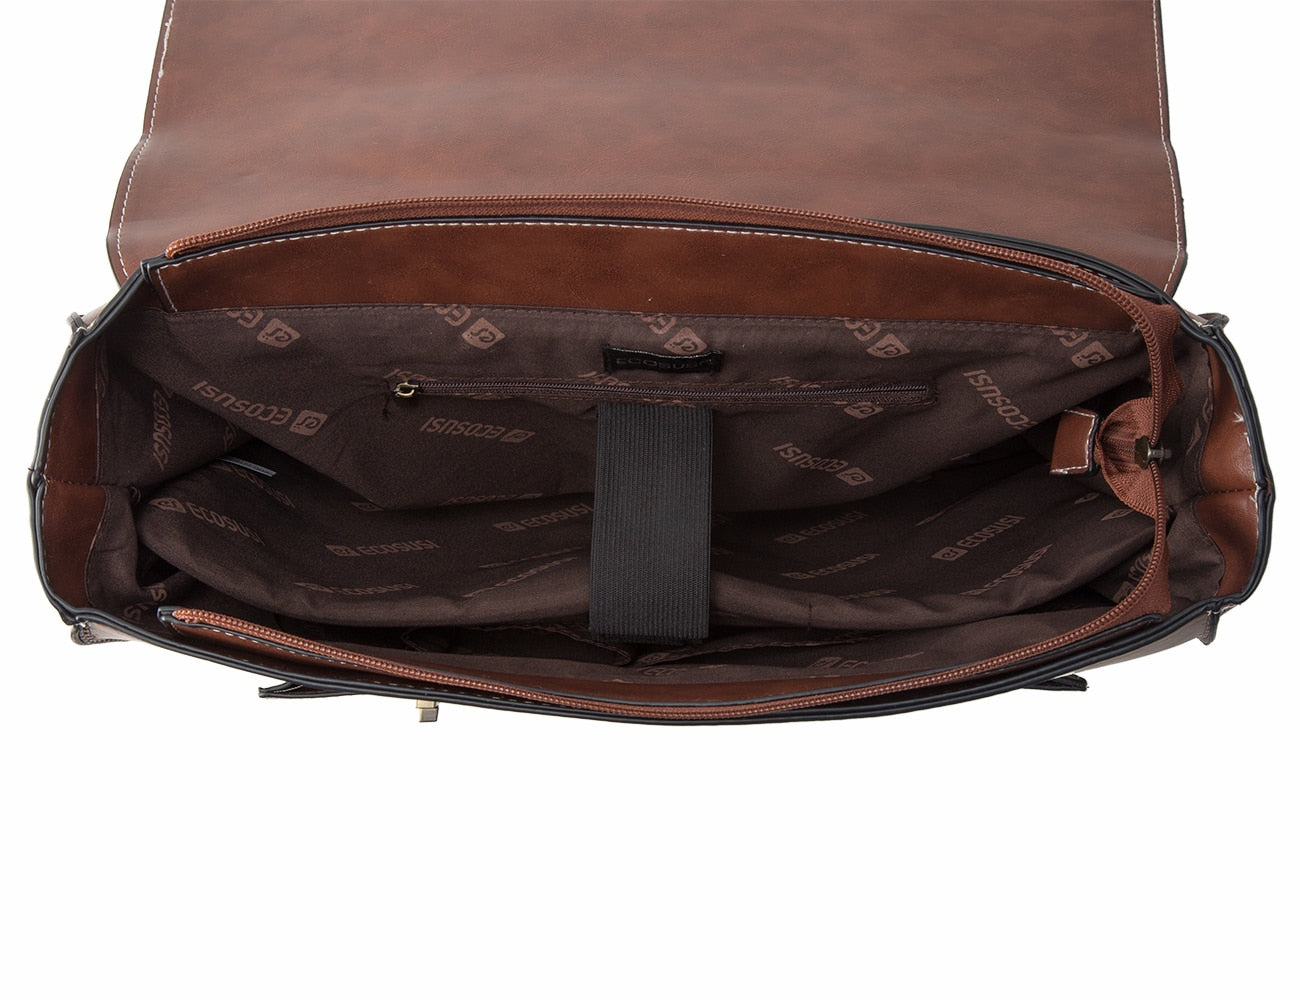 ECOSUSI Vegan Leather 14.7 Inch Laptop Messenger Bag